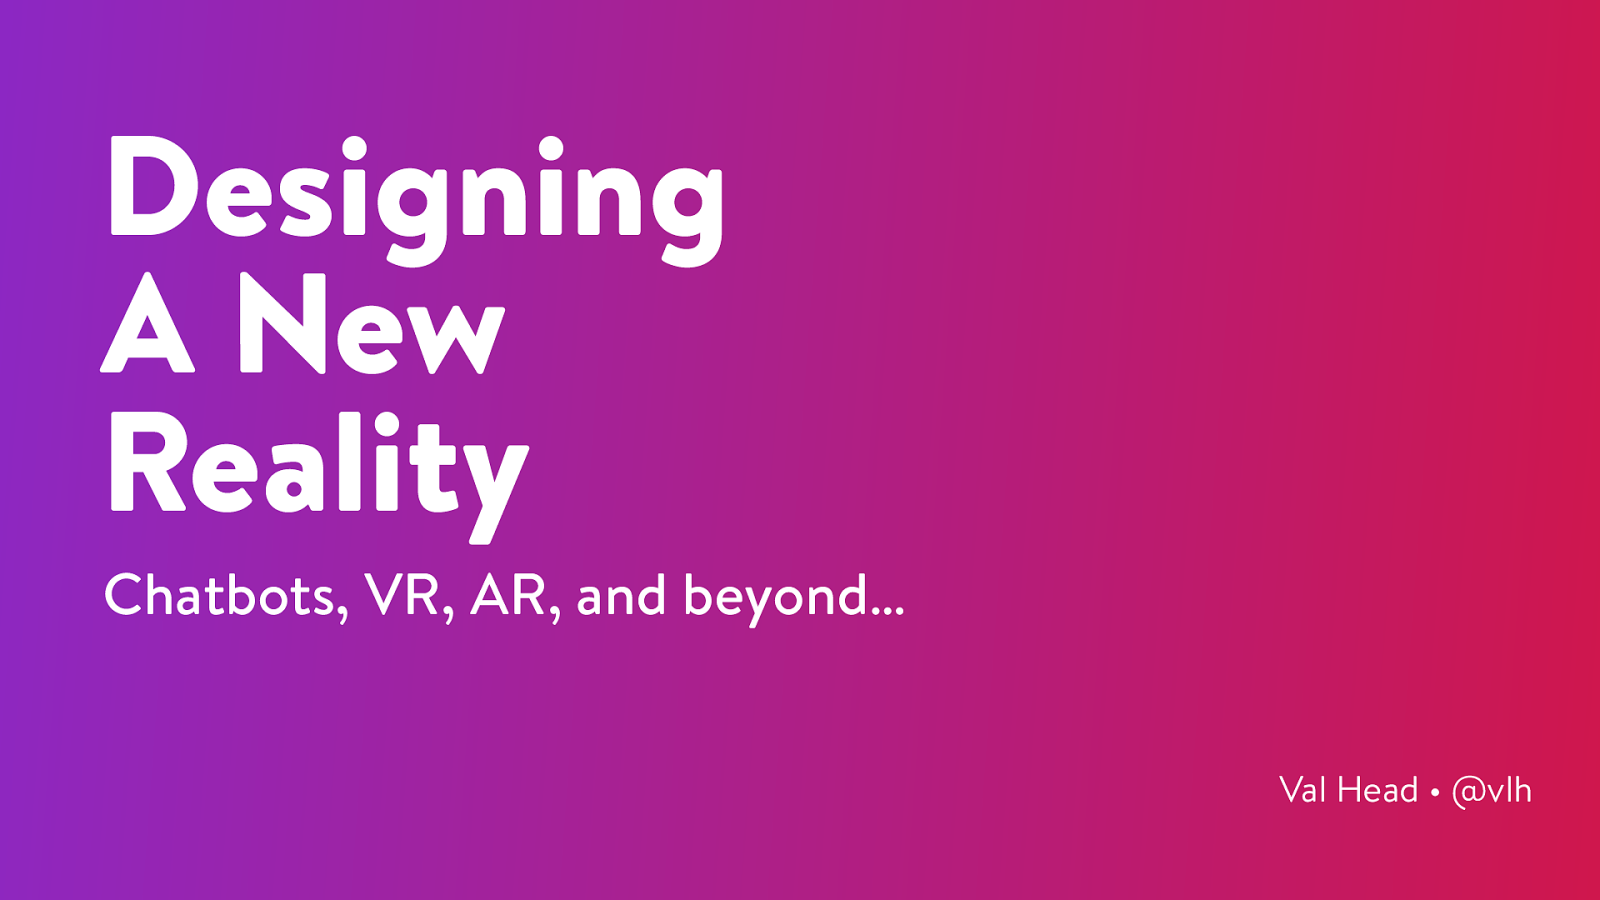 Designing a New Reality: Chatbots, AR, VR and beyond